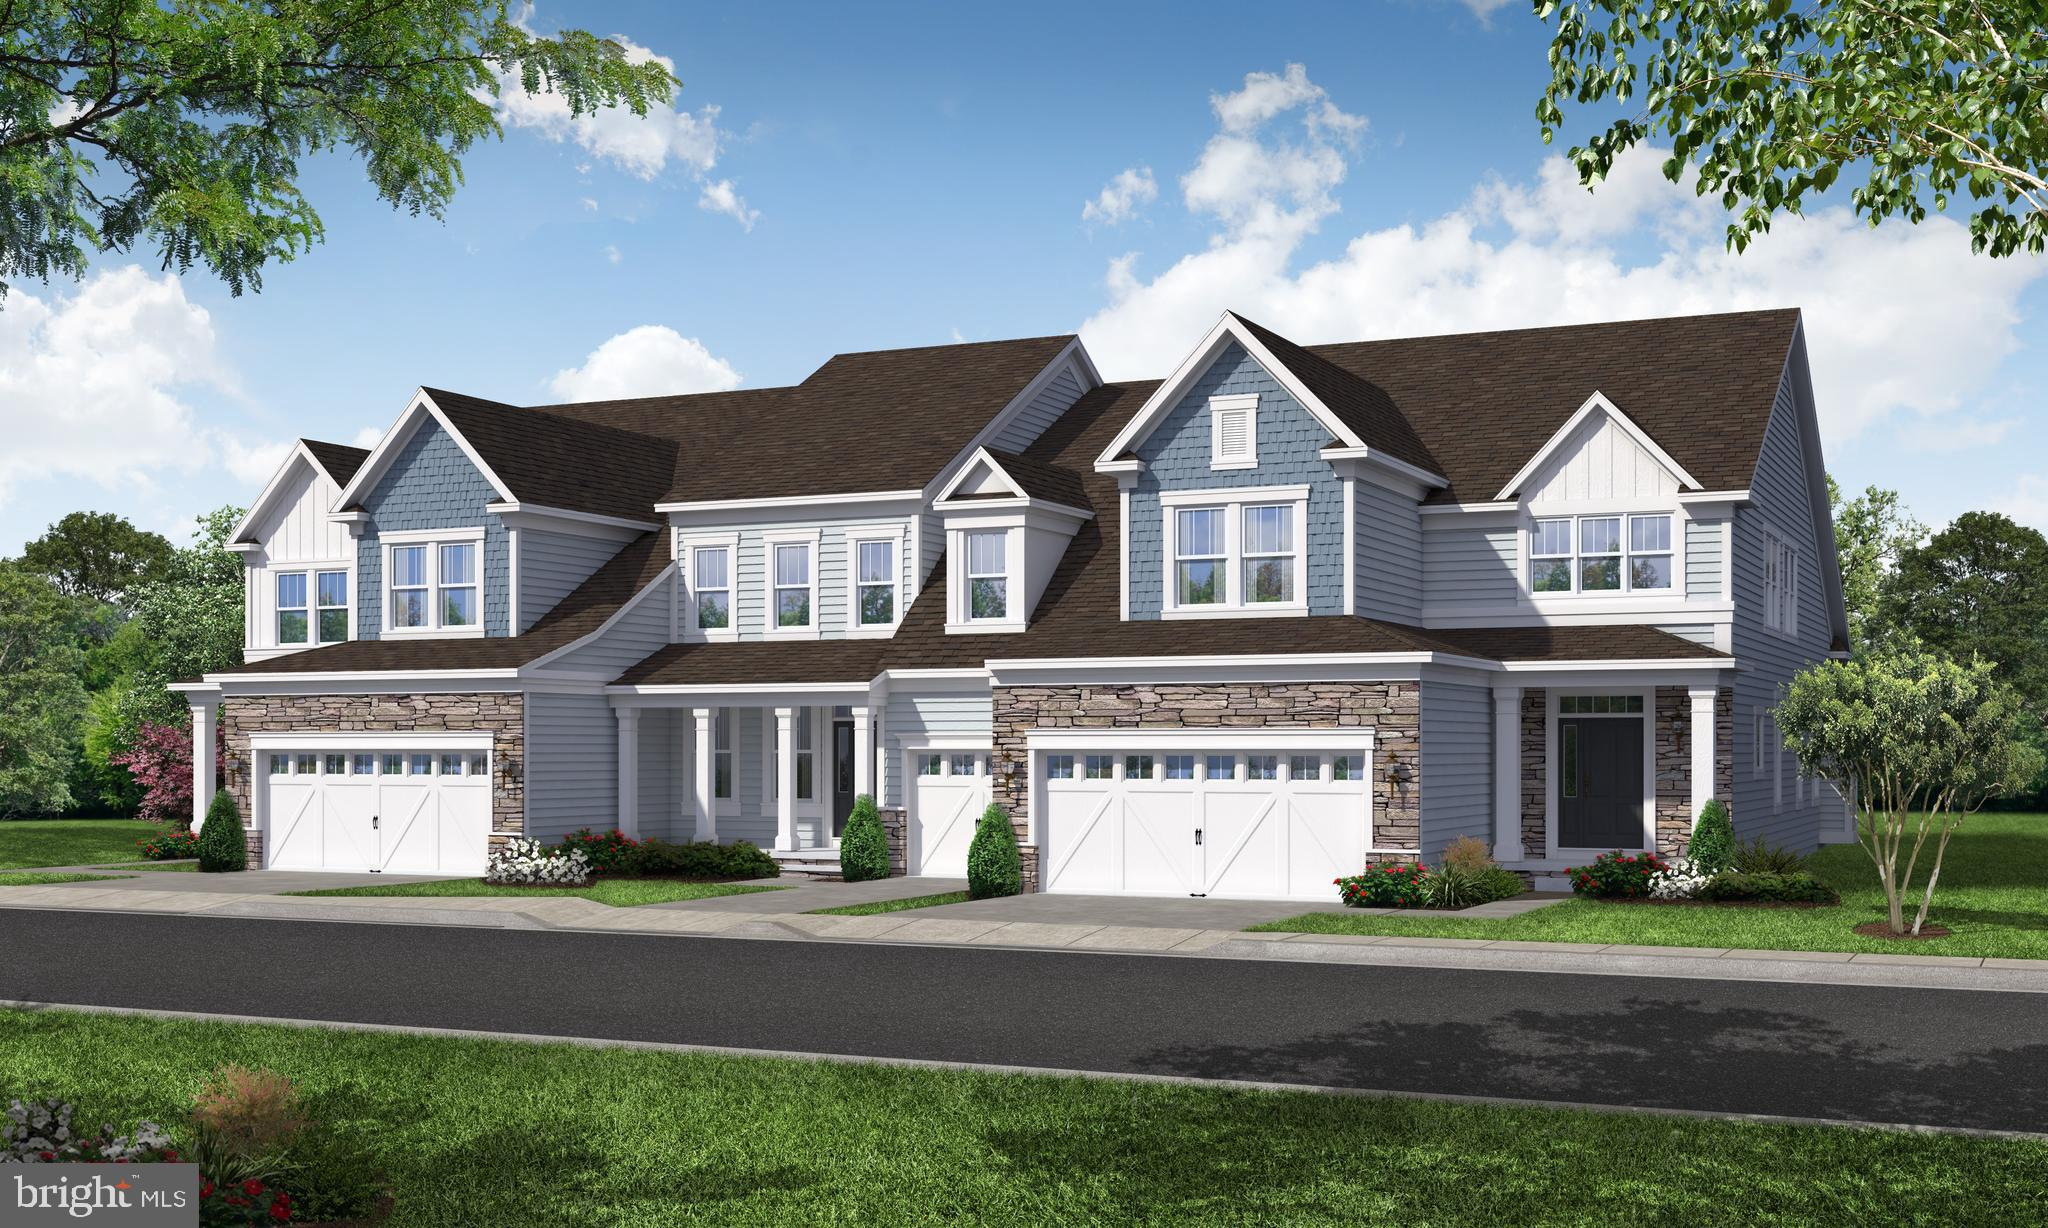 The Redford I  Model.  Welcome to the Ponds at Bayberry, New Castle County's Newest 55+ Community!  Just 1 mile to Route 1 and just 15 minutes to the Christiana Mall, Delaware Park, and Christiana Hospital.  Bayberry Town Center and amenities complex with clubhouse and outdoor pool!  The Ponds at Bayberry features maintenance-free living, with grass cutting, trash, and snow plowing taken care of.  A new standard for combining elegant design with ultimate practicability, the Redford I features a spacious, open floor pan designed for care free and casual living.  The light filled great room and expansive kitchen with a center island are flanked with a dining room perfect for dinner parties.  Ample floor space is devoted to the 1st floor Owners suite, complete with large walk in closet and luxurious owners bath.  Stairs leading to 2nd floor to an open loft area for casual living area.  This is a to-be built home.